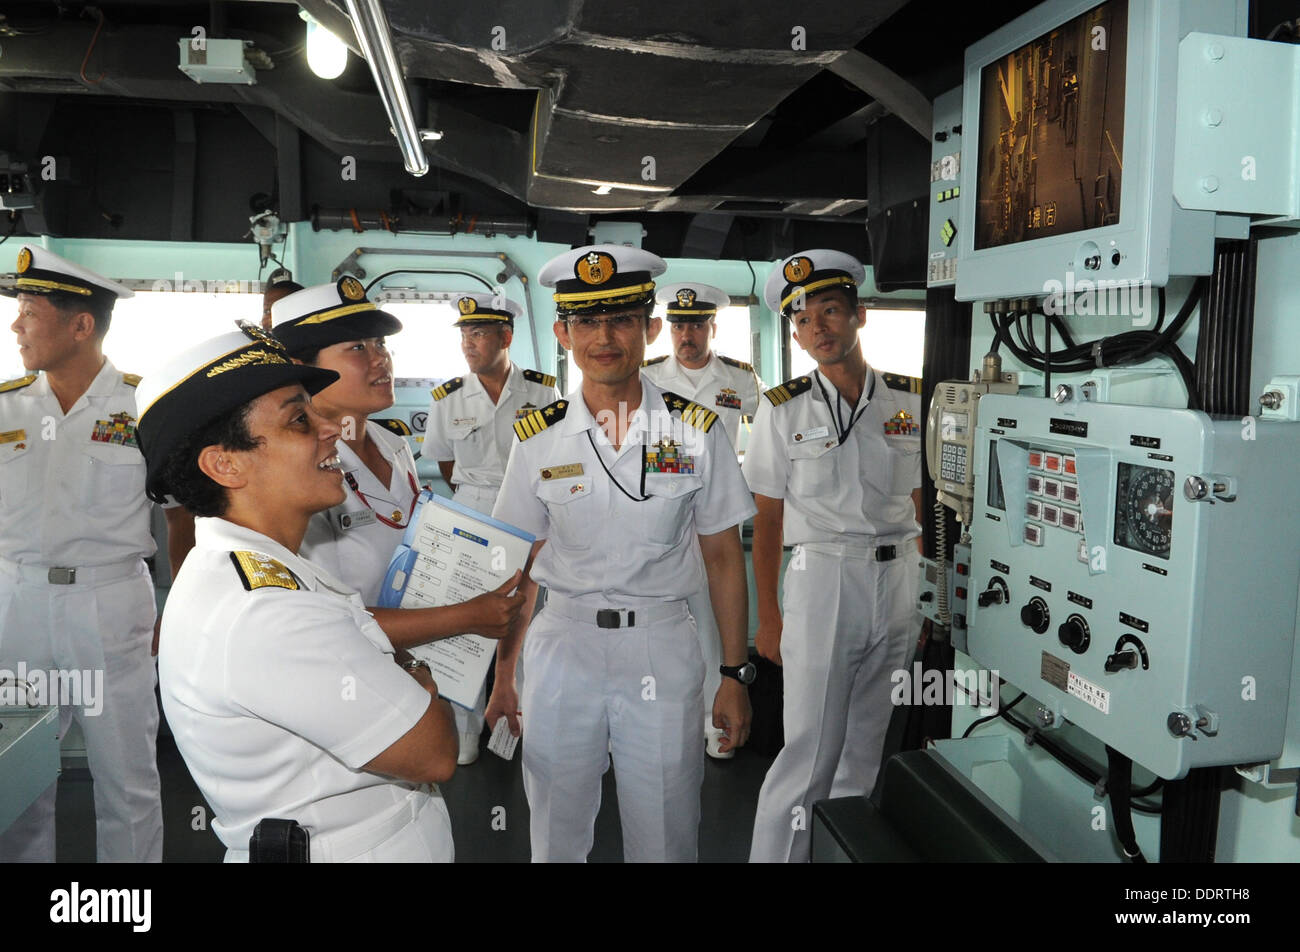 Vice Adm. Michelle Howard, Deputy Chief of Naval Operations for Operations, Plans and Strategy, tours the bridge deck of the Ja - Stock Image